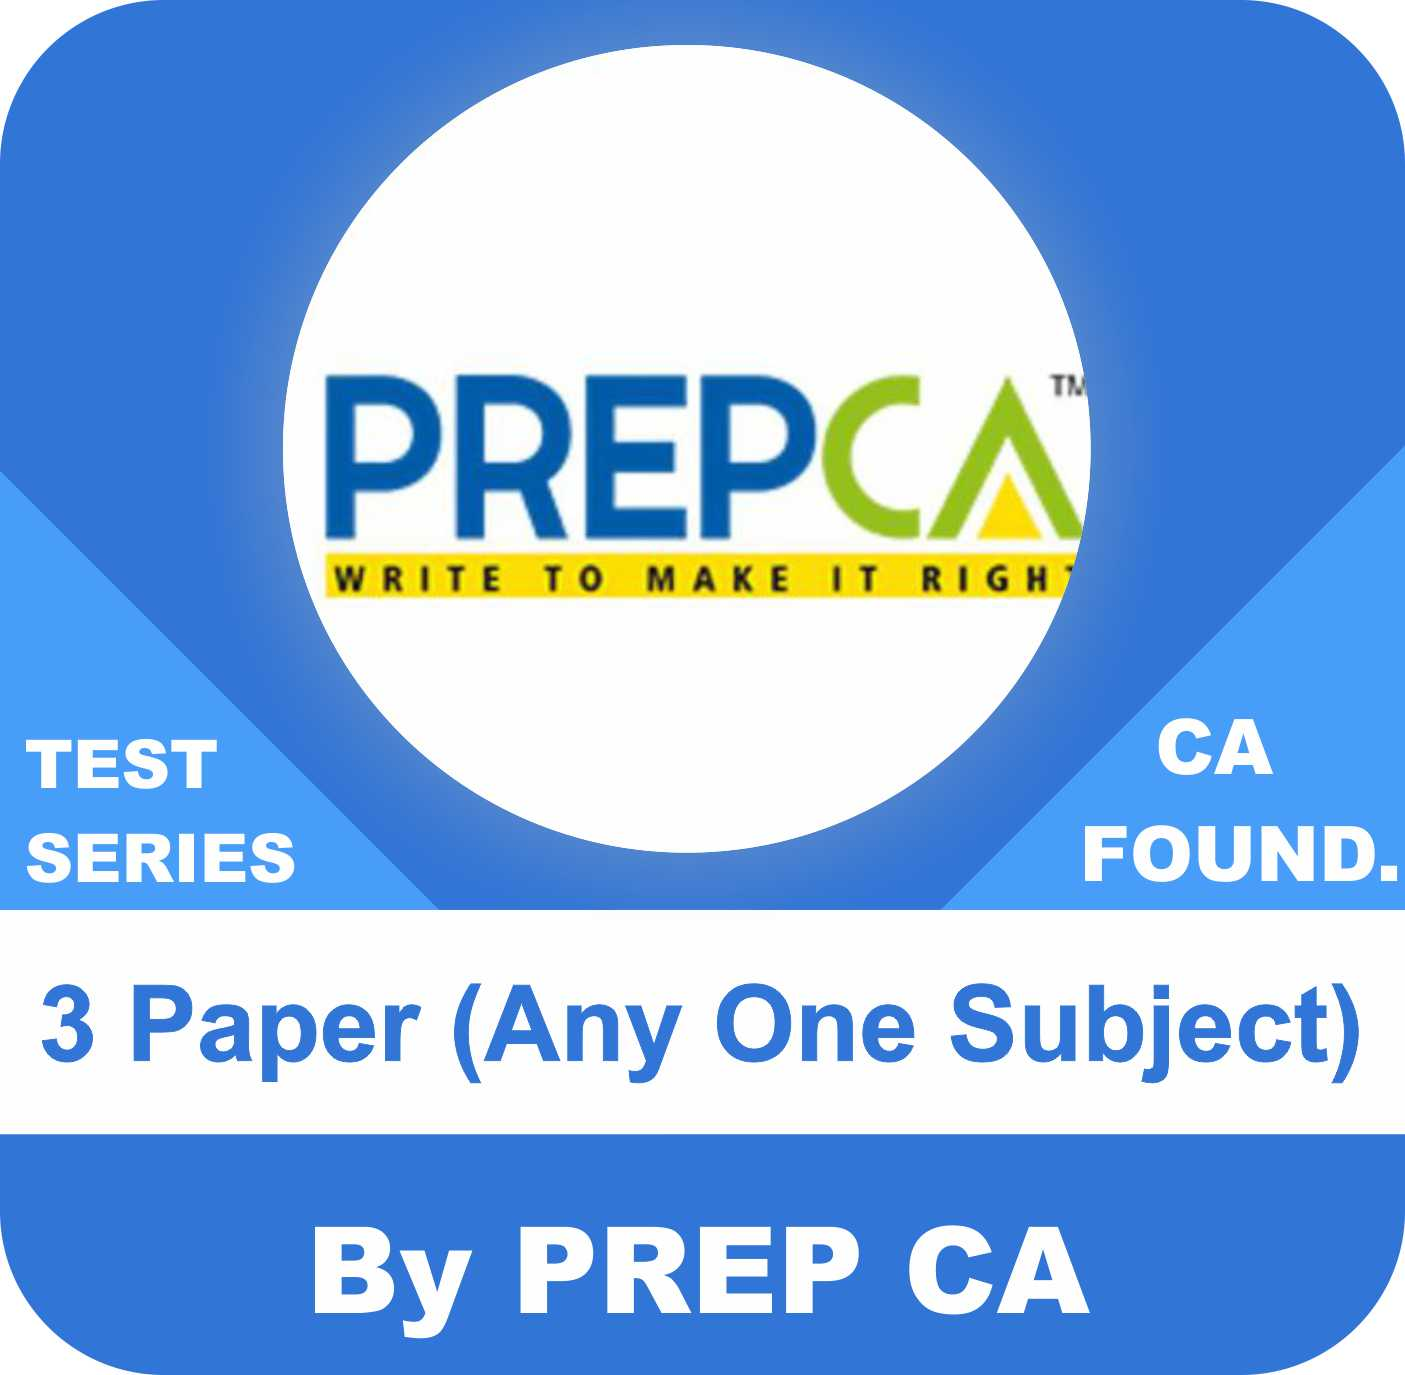 CA Foundation Three Paper Of Any one Subject Test Series in Standard Plus Program by PREPCA